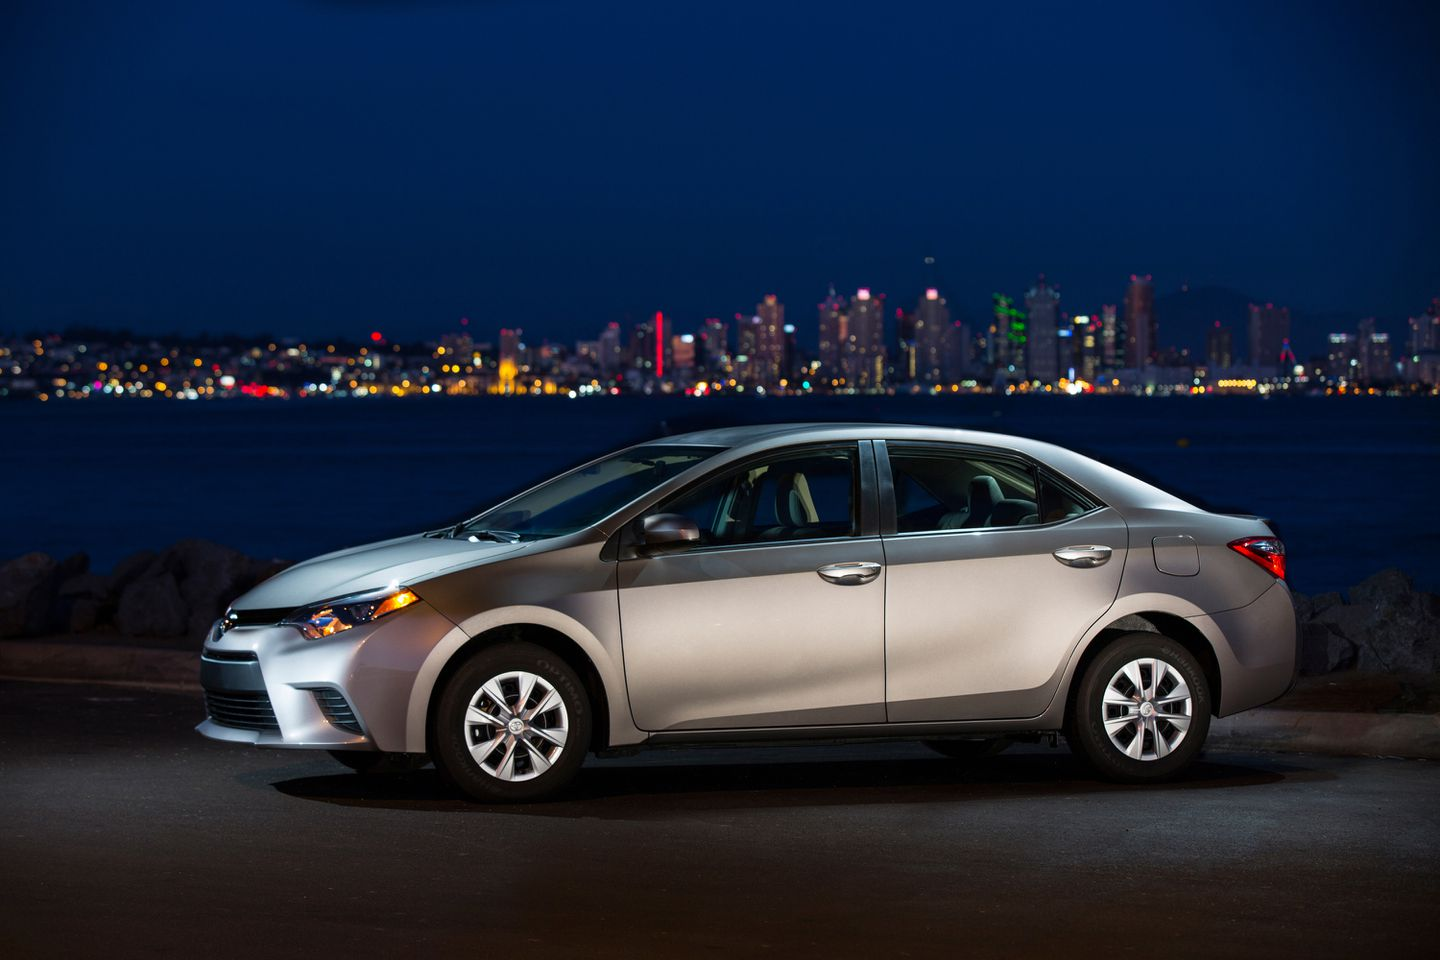 new toyota corolla shows that durability reliability never get old the boston globe new toyota corolla shows that